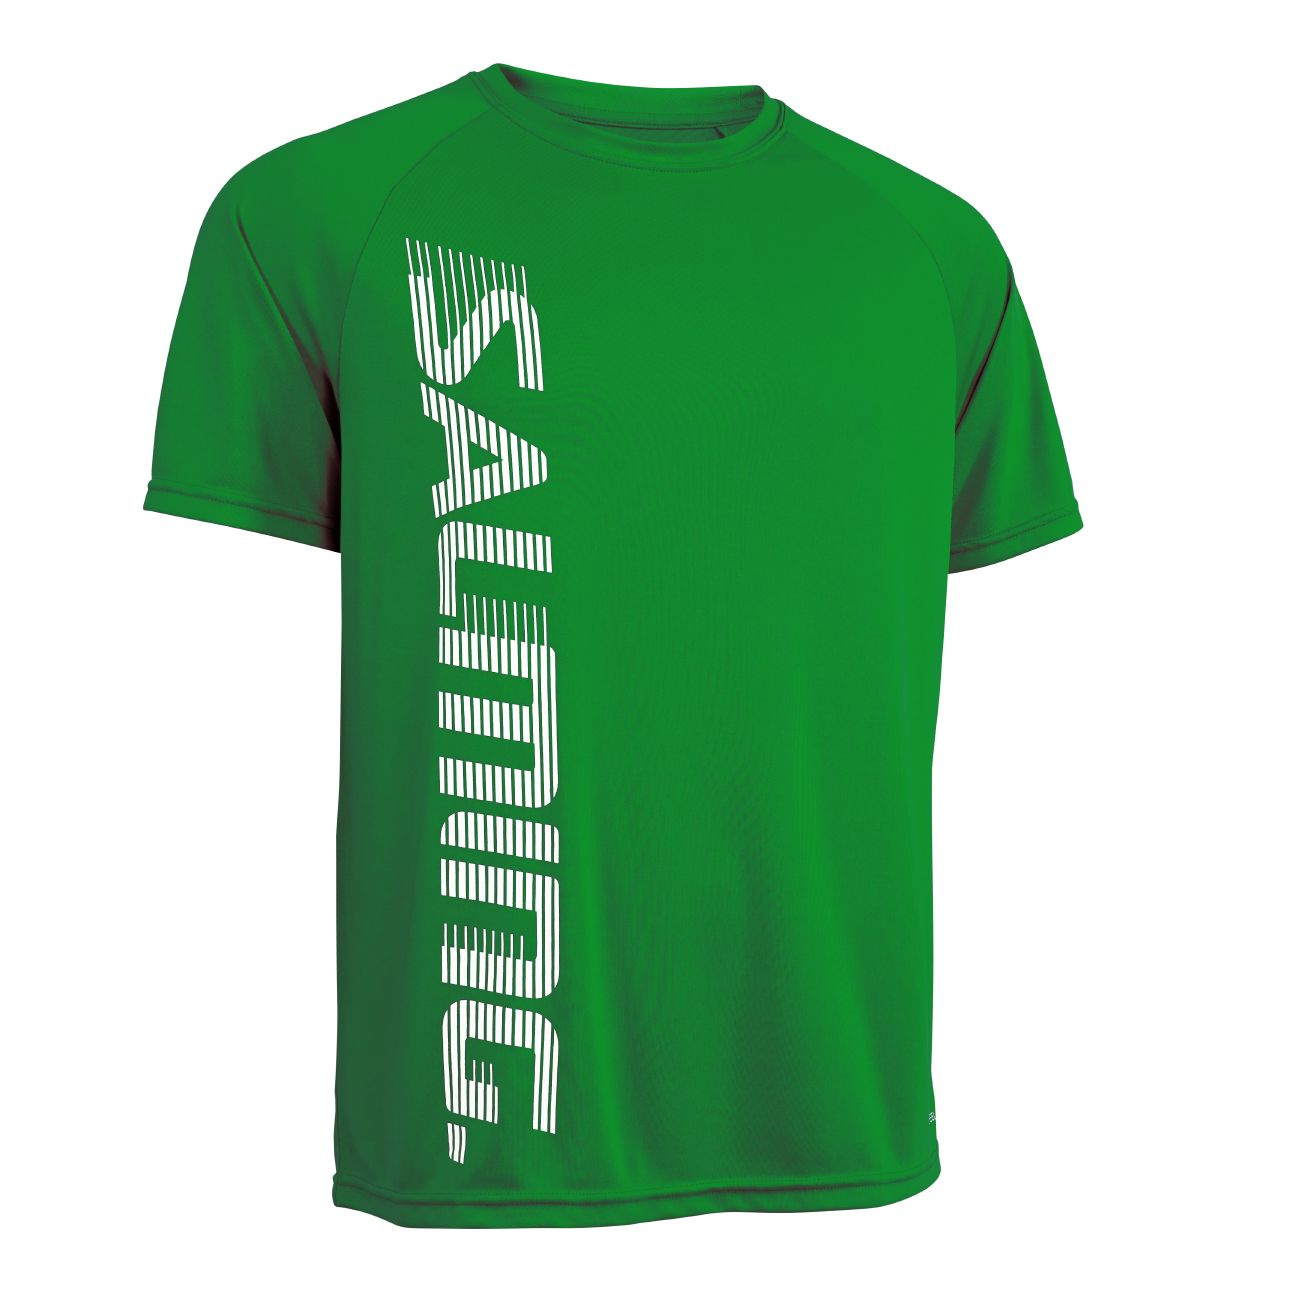 Salming Training Tee 2.0 Modrá, XL